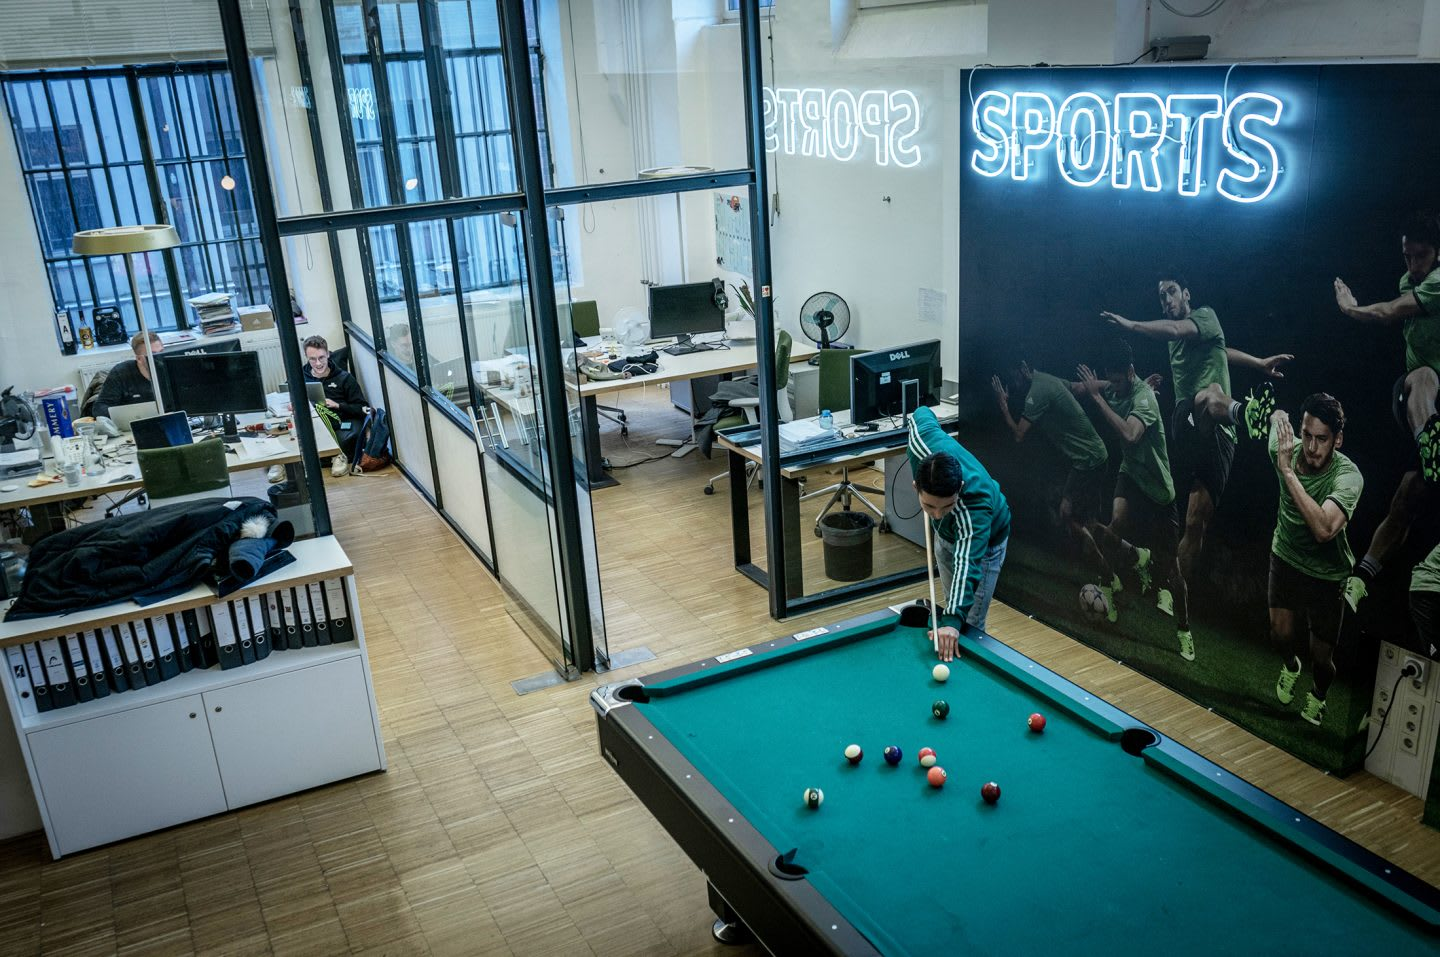 JvM office with a man playing billard. How to build a creative workplace culture, JvM, workplace, collaboration, creativity, team-building, GamePlan A